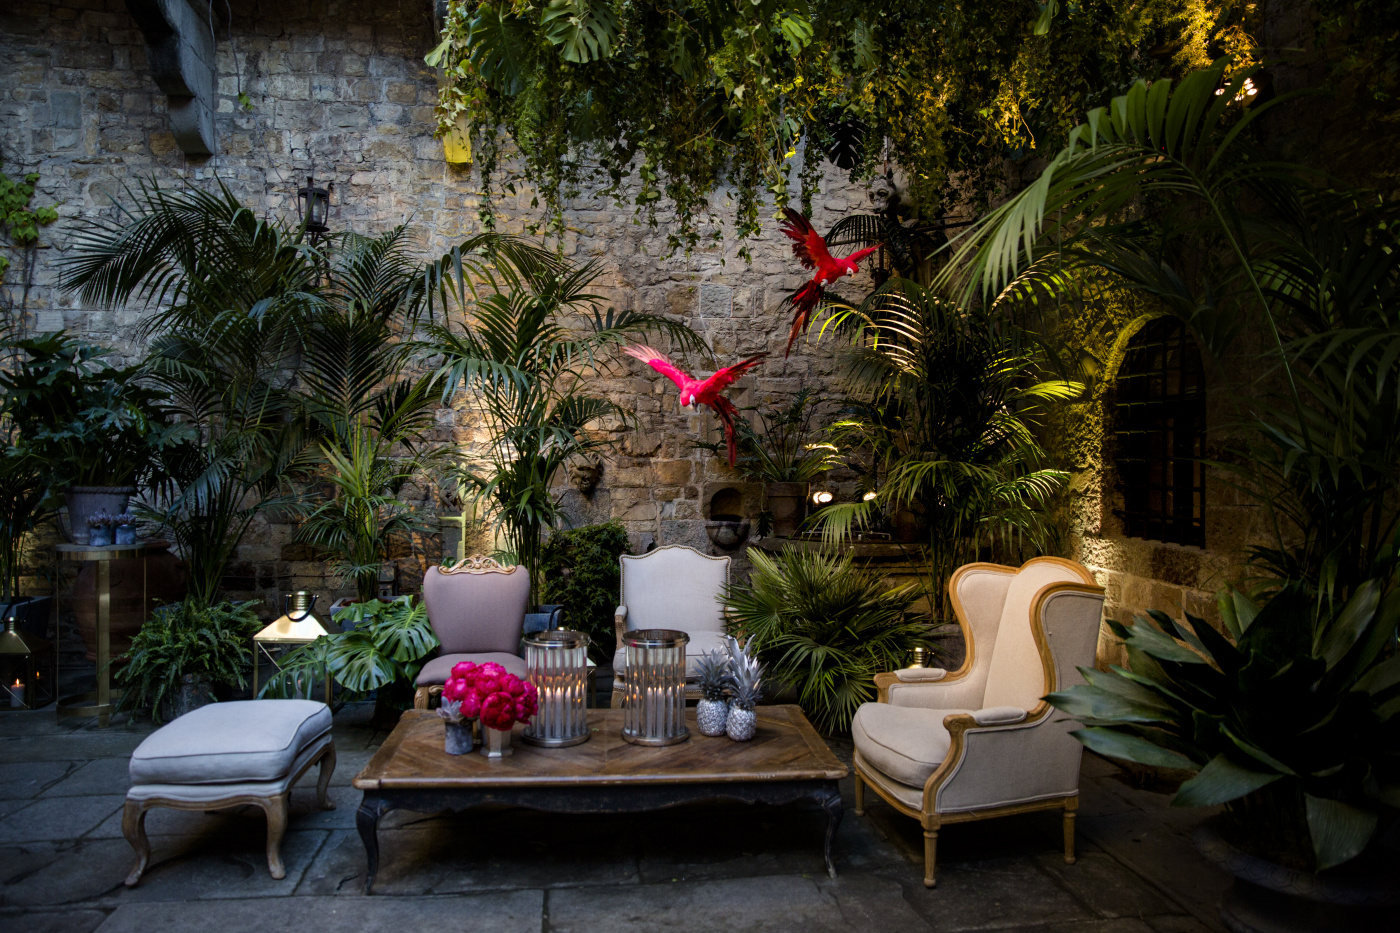 Lounge corner, plants, hanging greenery and parrots